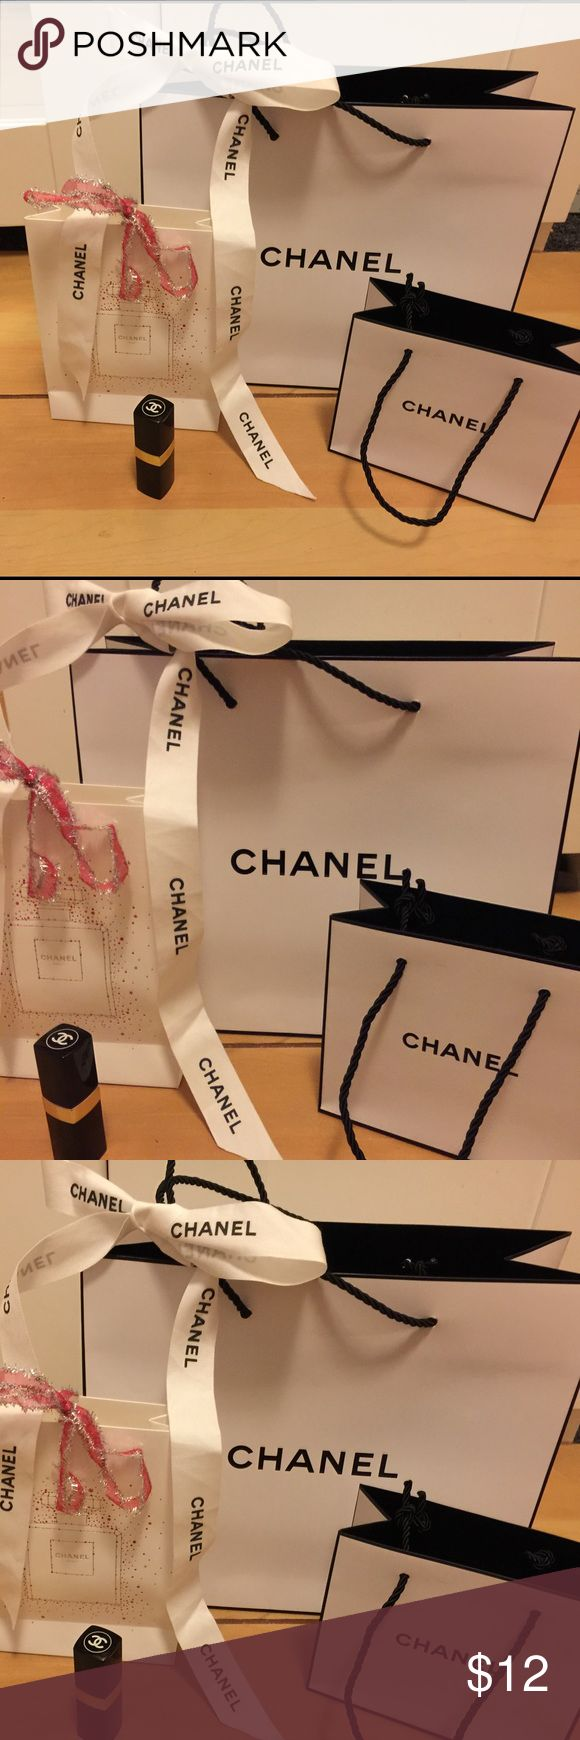 Bundle 3 Chanel Shopping bags Bundle of 3 Chanel shopping bags plus ribbon, the lipstick is not on sale I just put it there so you have an idea how big the bags are CHANEL Bags